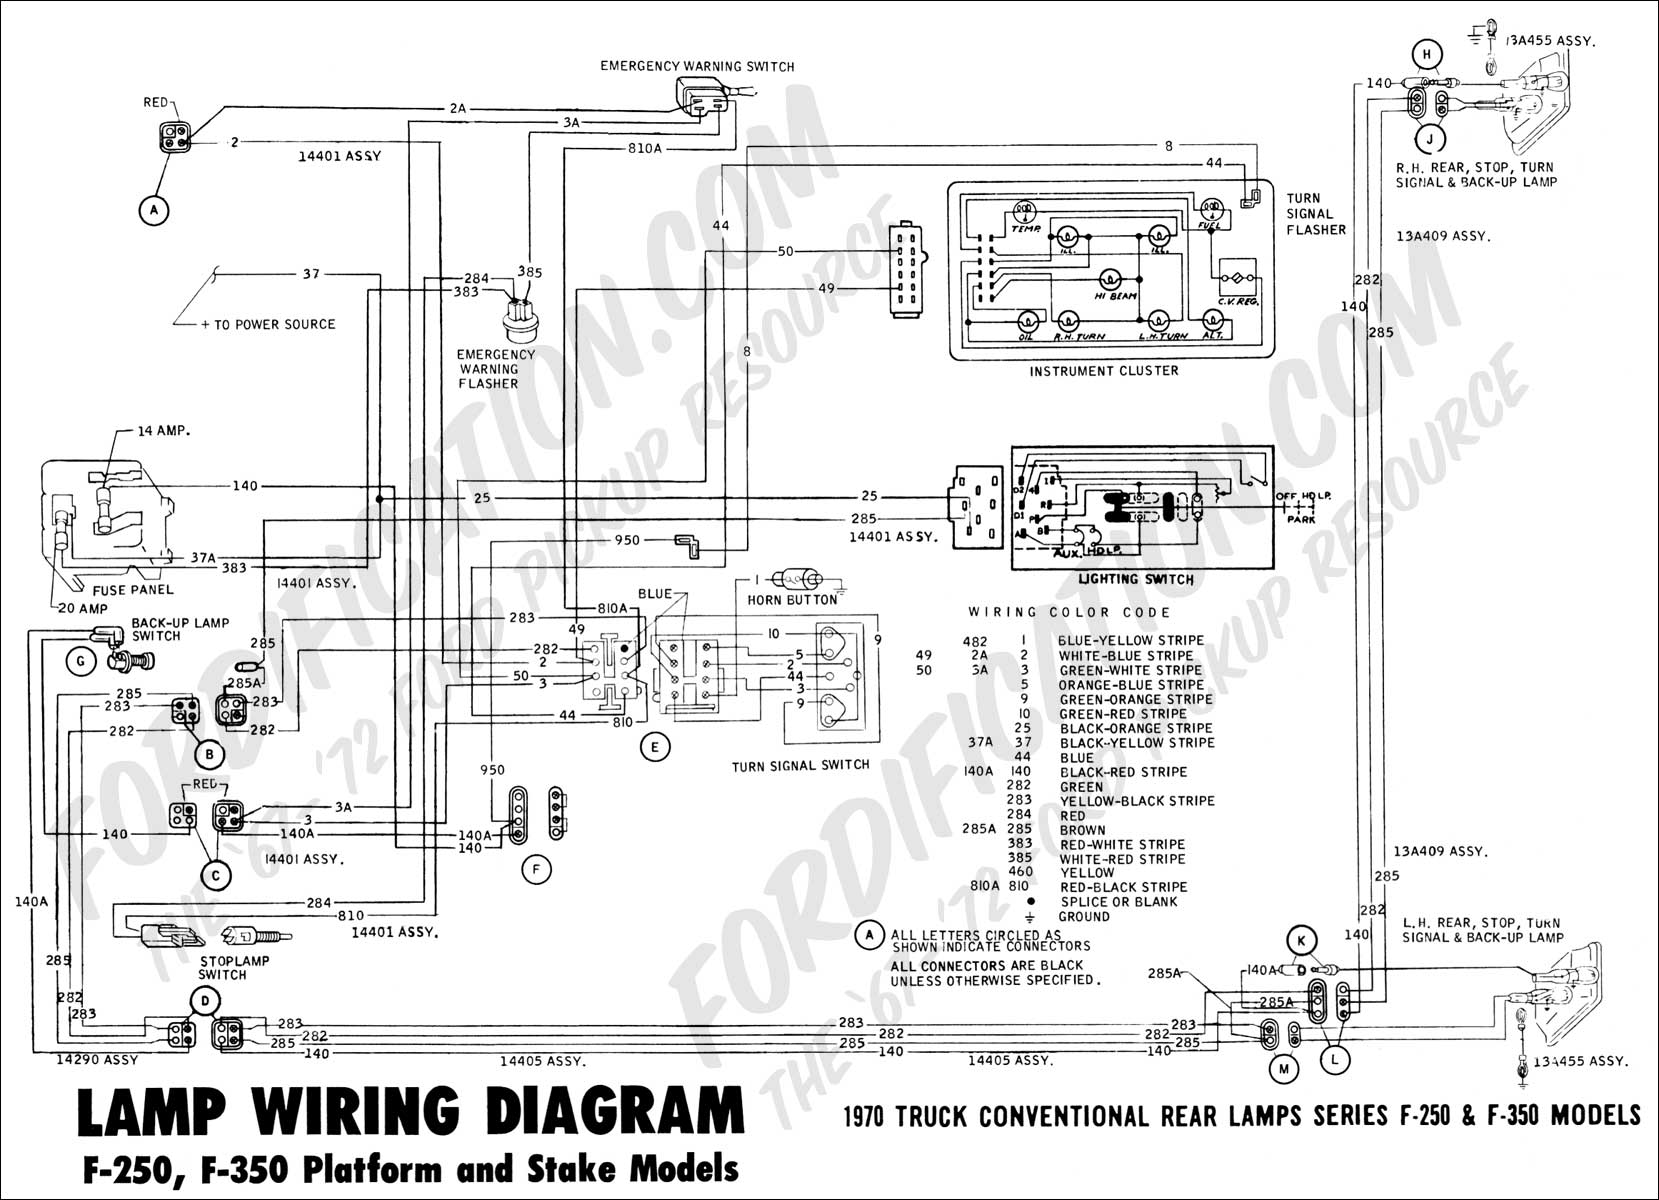 hight resolution of ford truck technical drawings and schematics section h wiring1970 f 250 f 350 platform stake